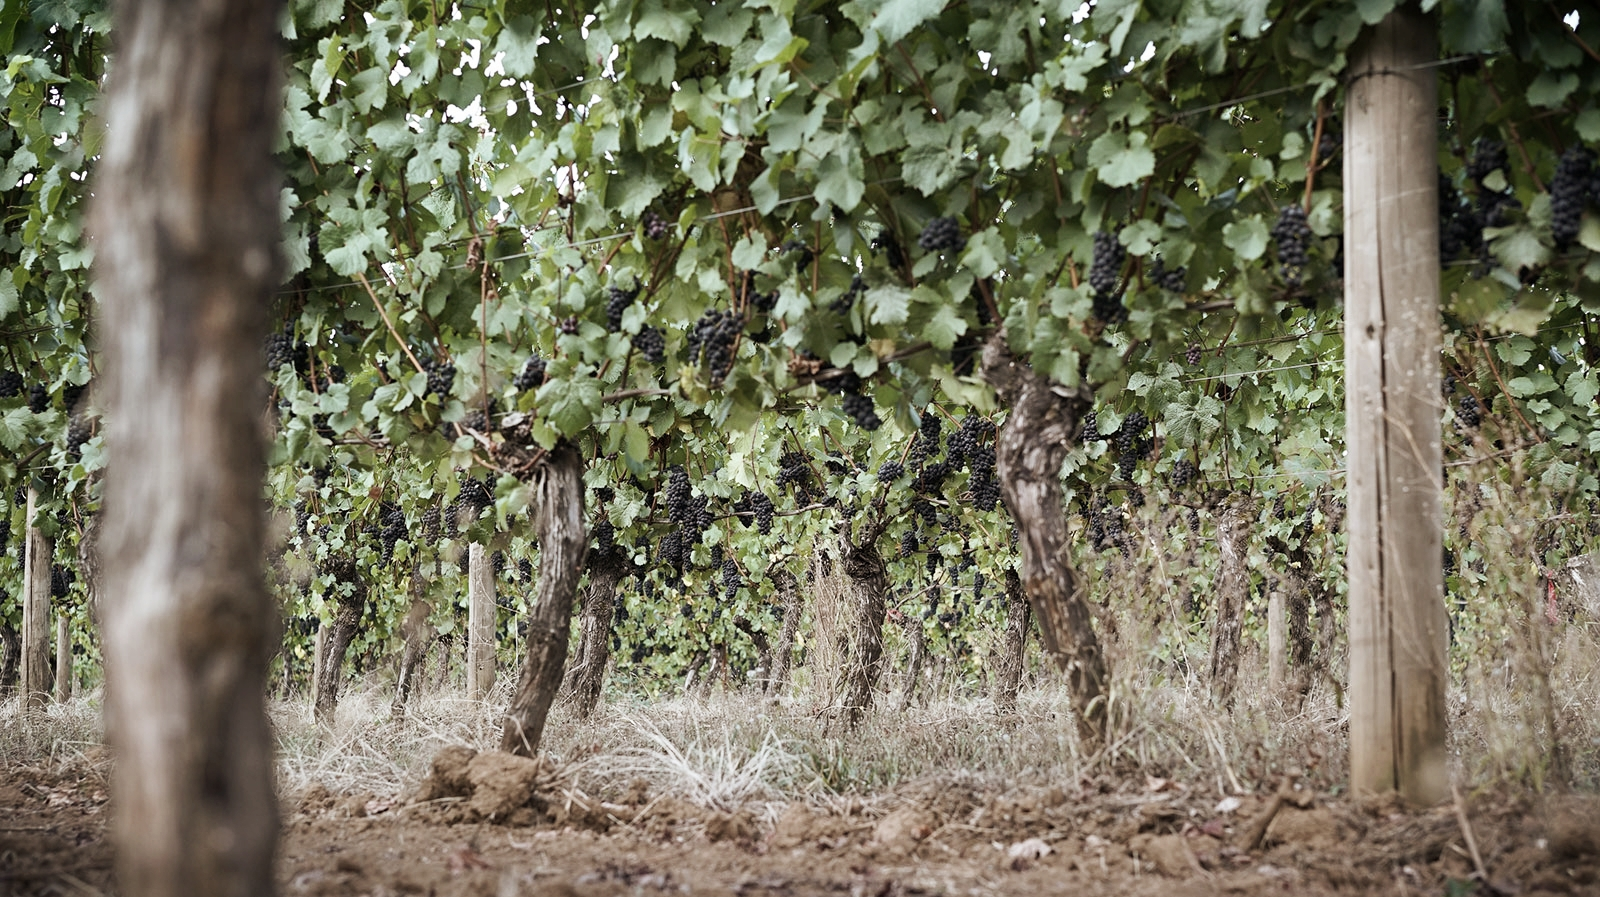 Pinot noir fruit hanging from the old vines at Hyland Vineyard, Willamette Valley, Oregon